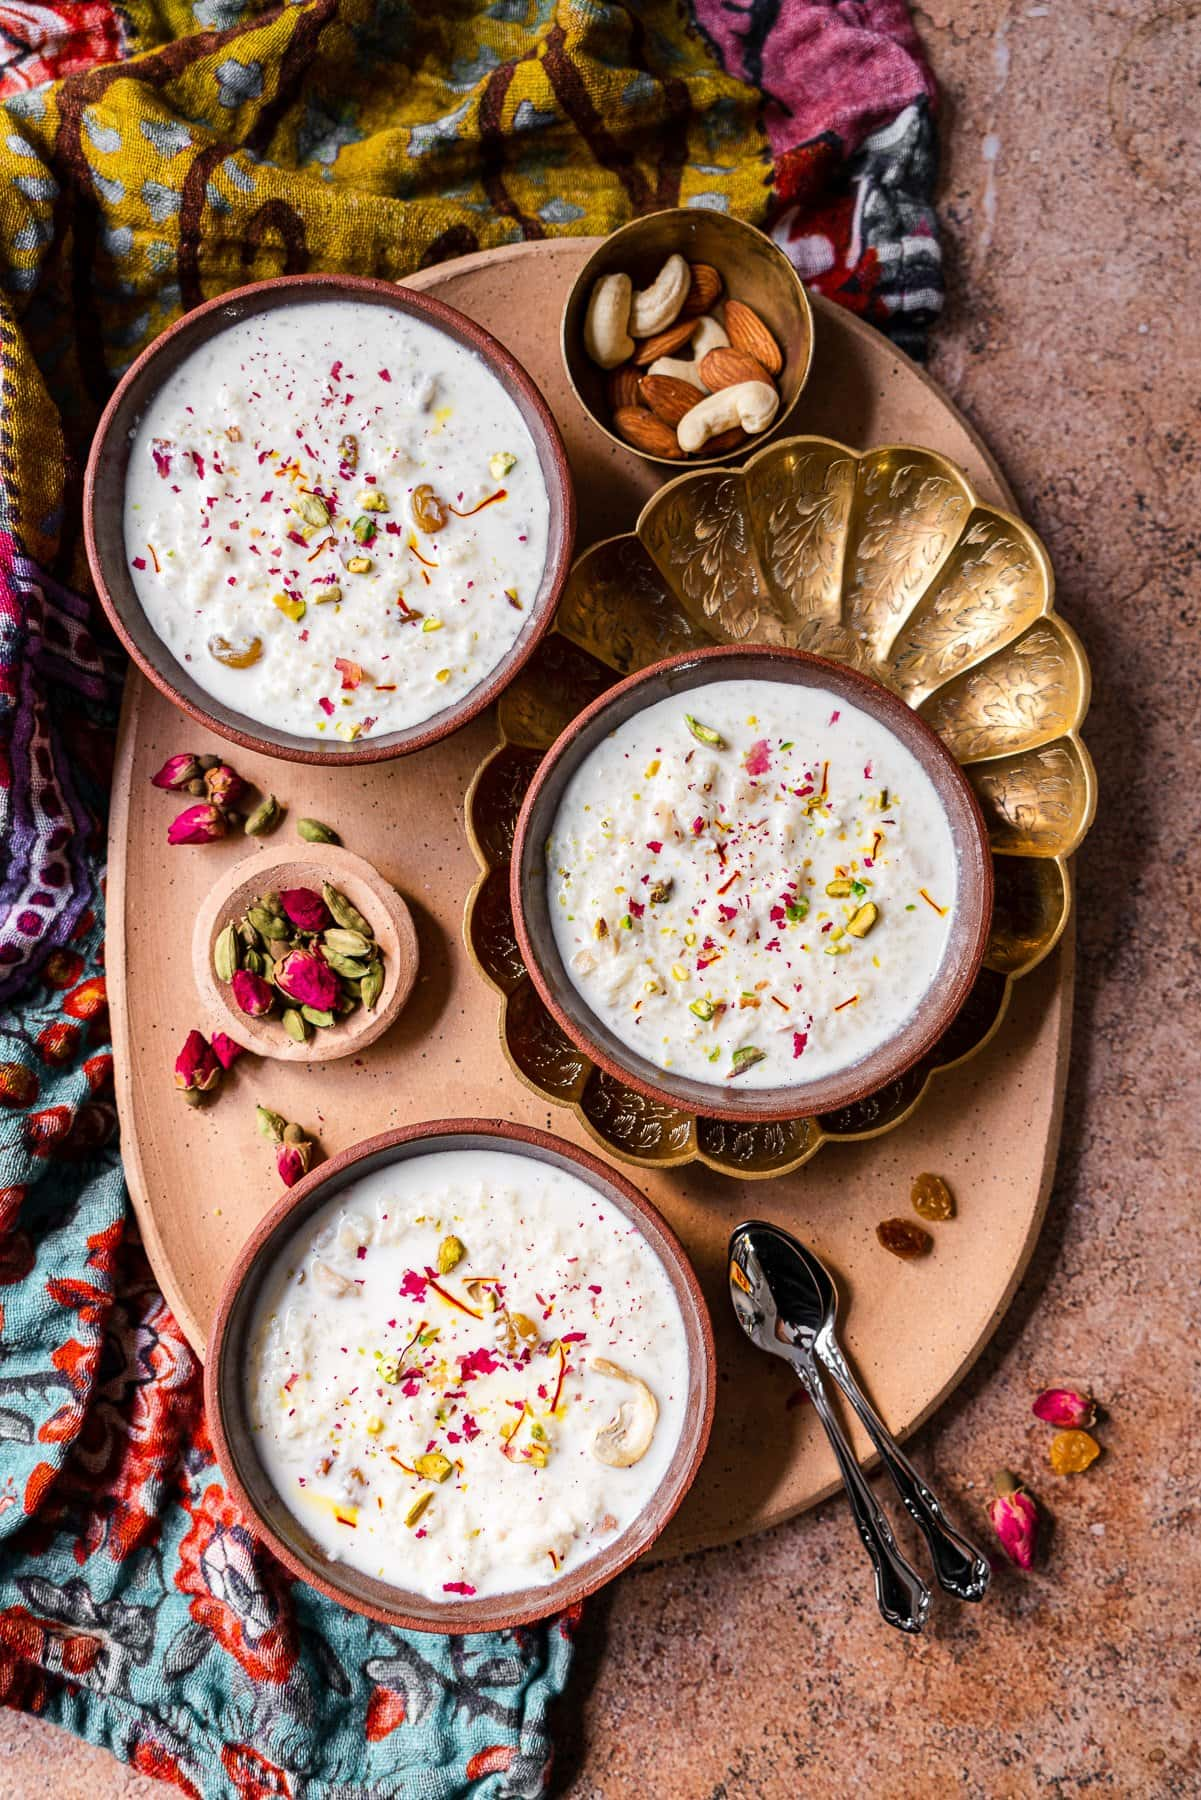 a platter with three bowls of kheer, nuts, raisins, roses, and cardamom